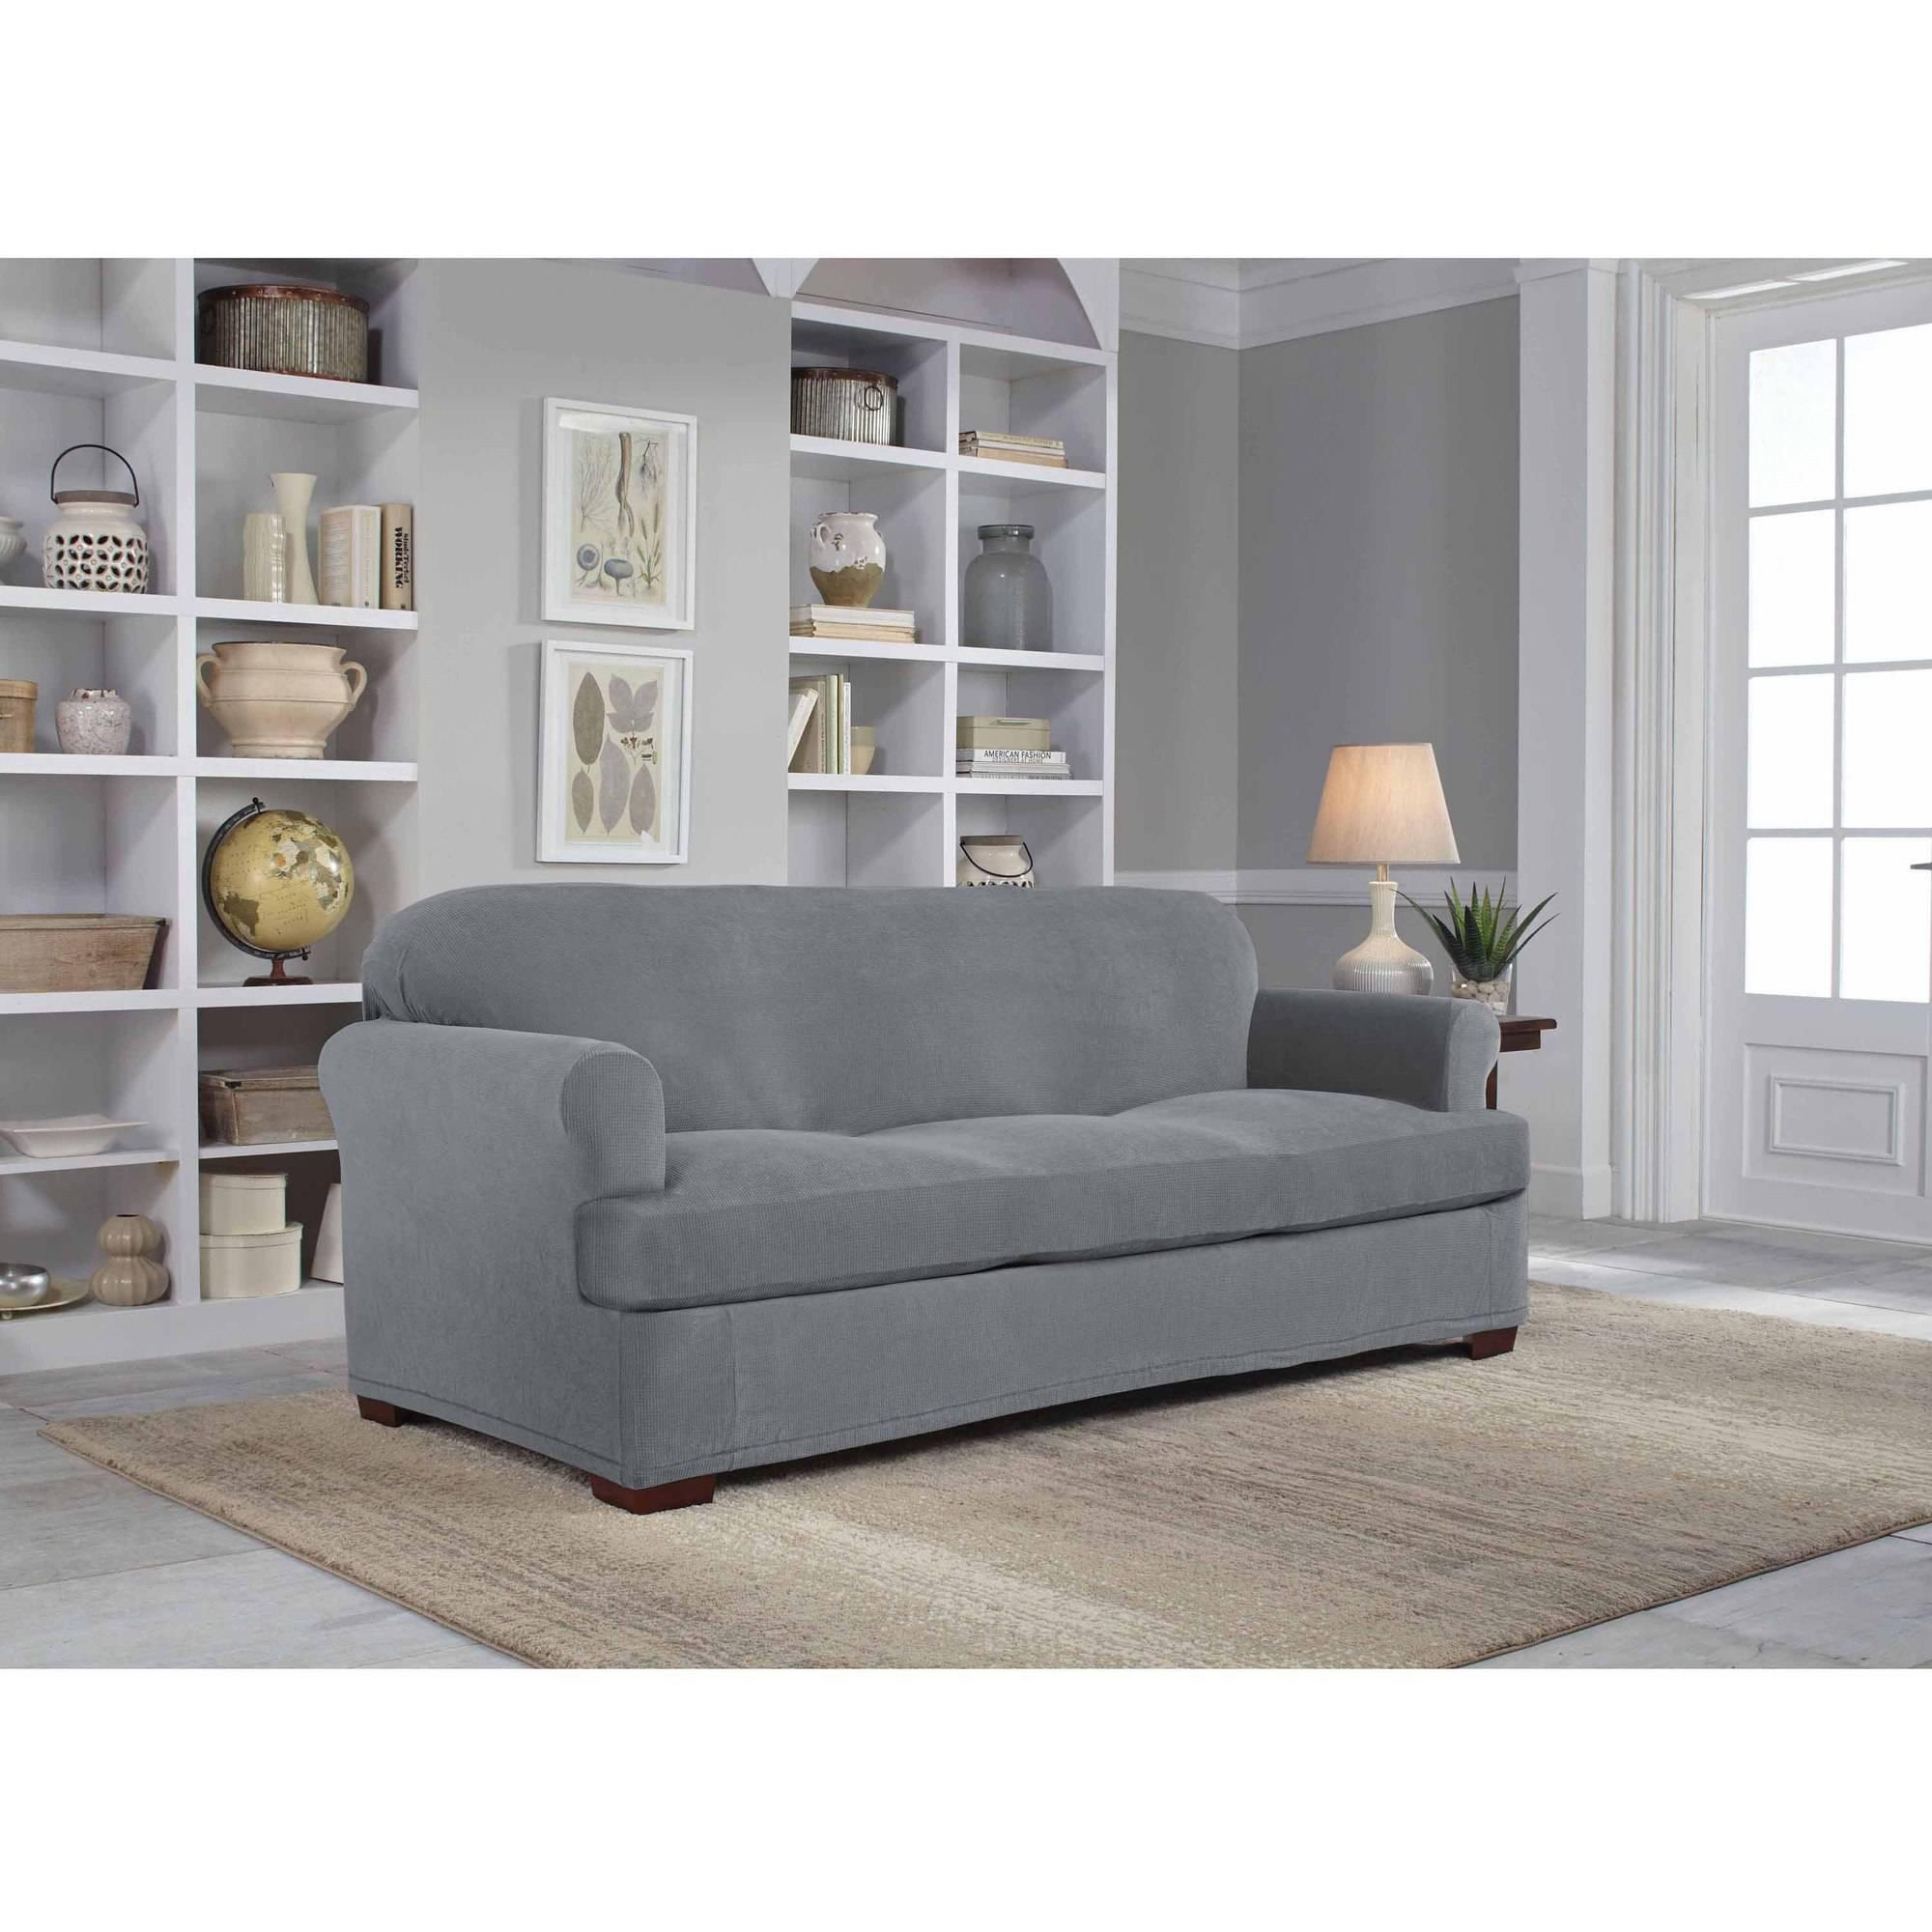 Serta Stretch Grid Slipcover, Sofa, 2 Piece T Cushion – Walmart Pertaining To T Cushion Slipcovers For Large Sofas (View 3 of 20)